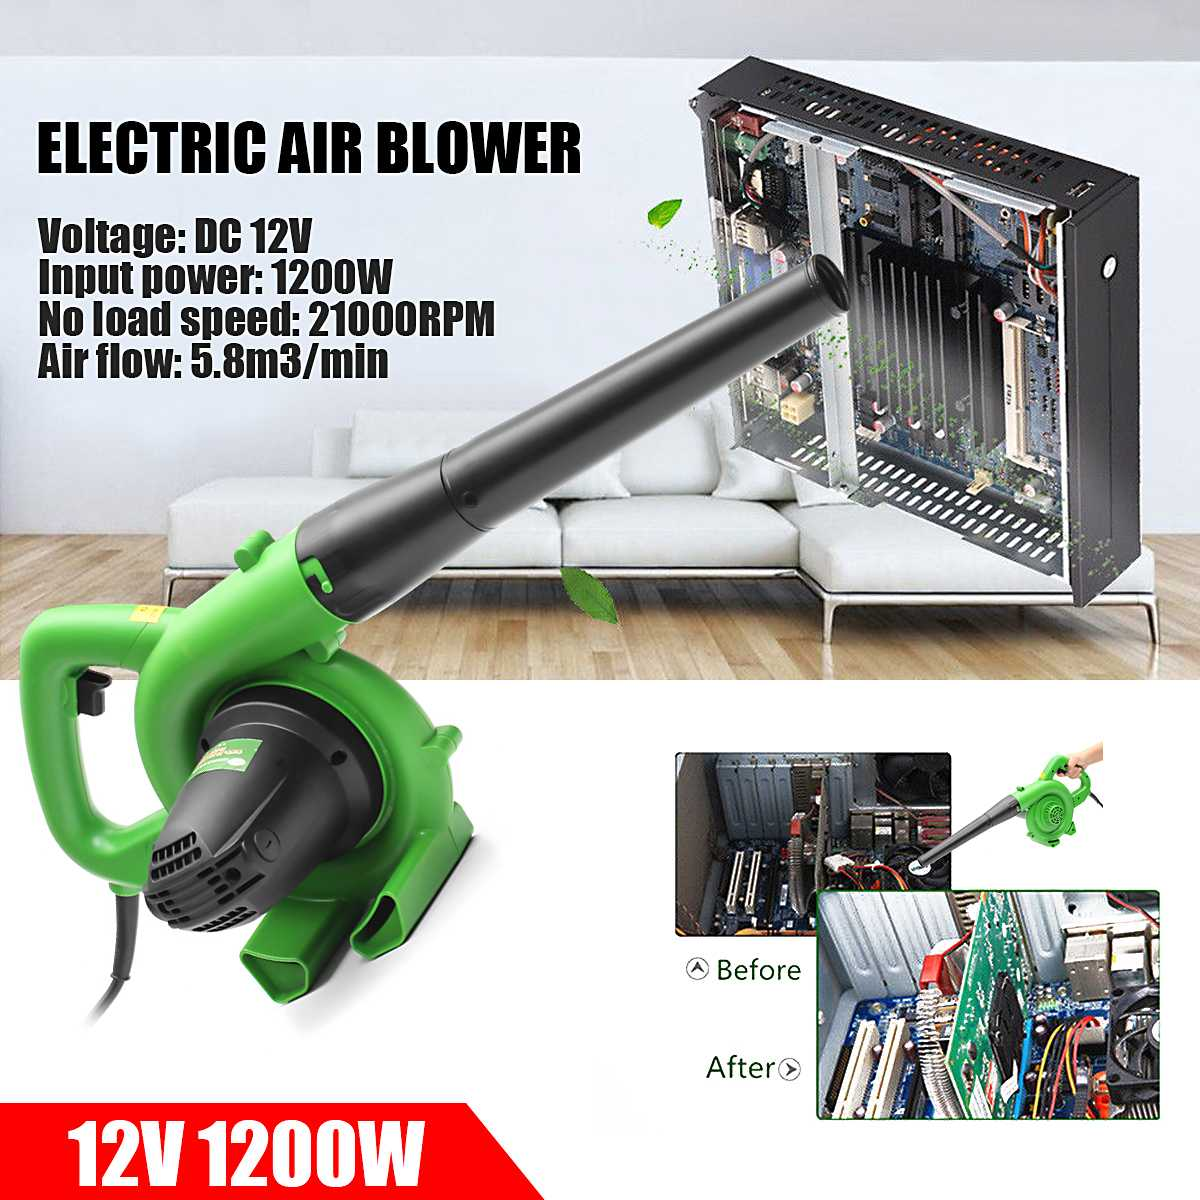 1200W Electric Portable Electric Blower Air Blower Handheld Garden Leaf Collector Air Blowing Dust Leaf Collecting Machine